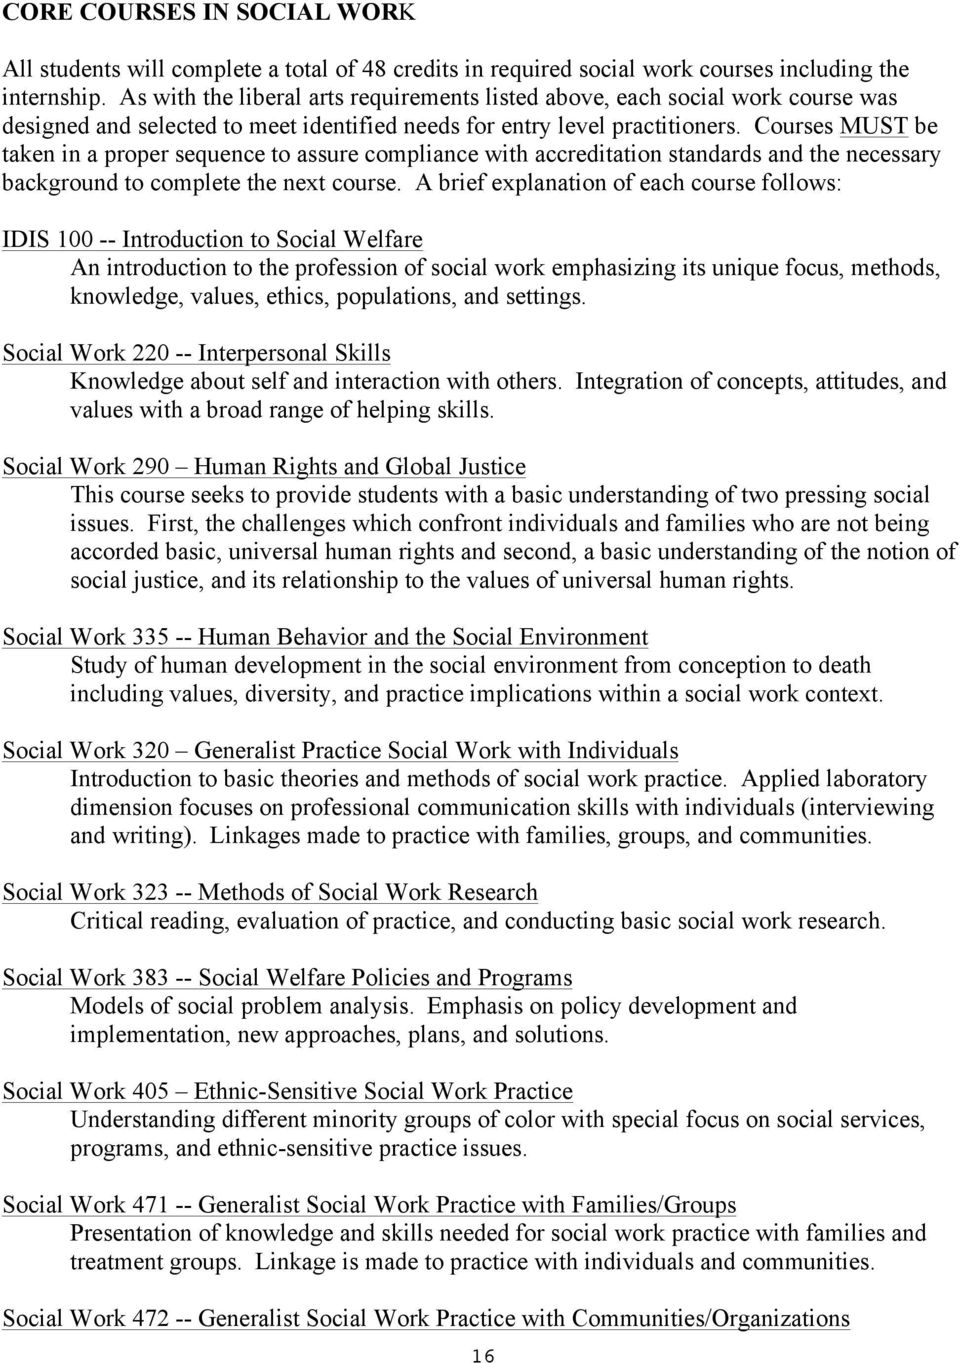 Courses MUST be taken in a proper sequence to assure compliance with accreditation standards and the necessary background to complete the next course.